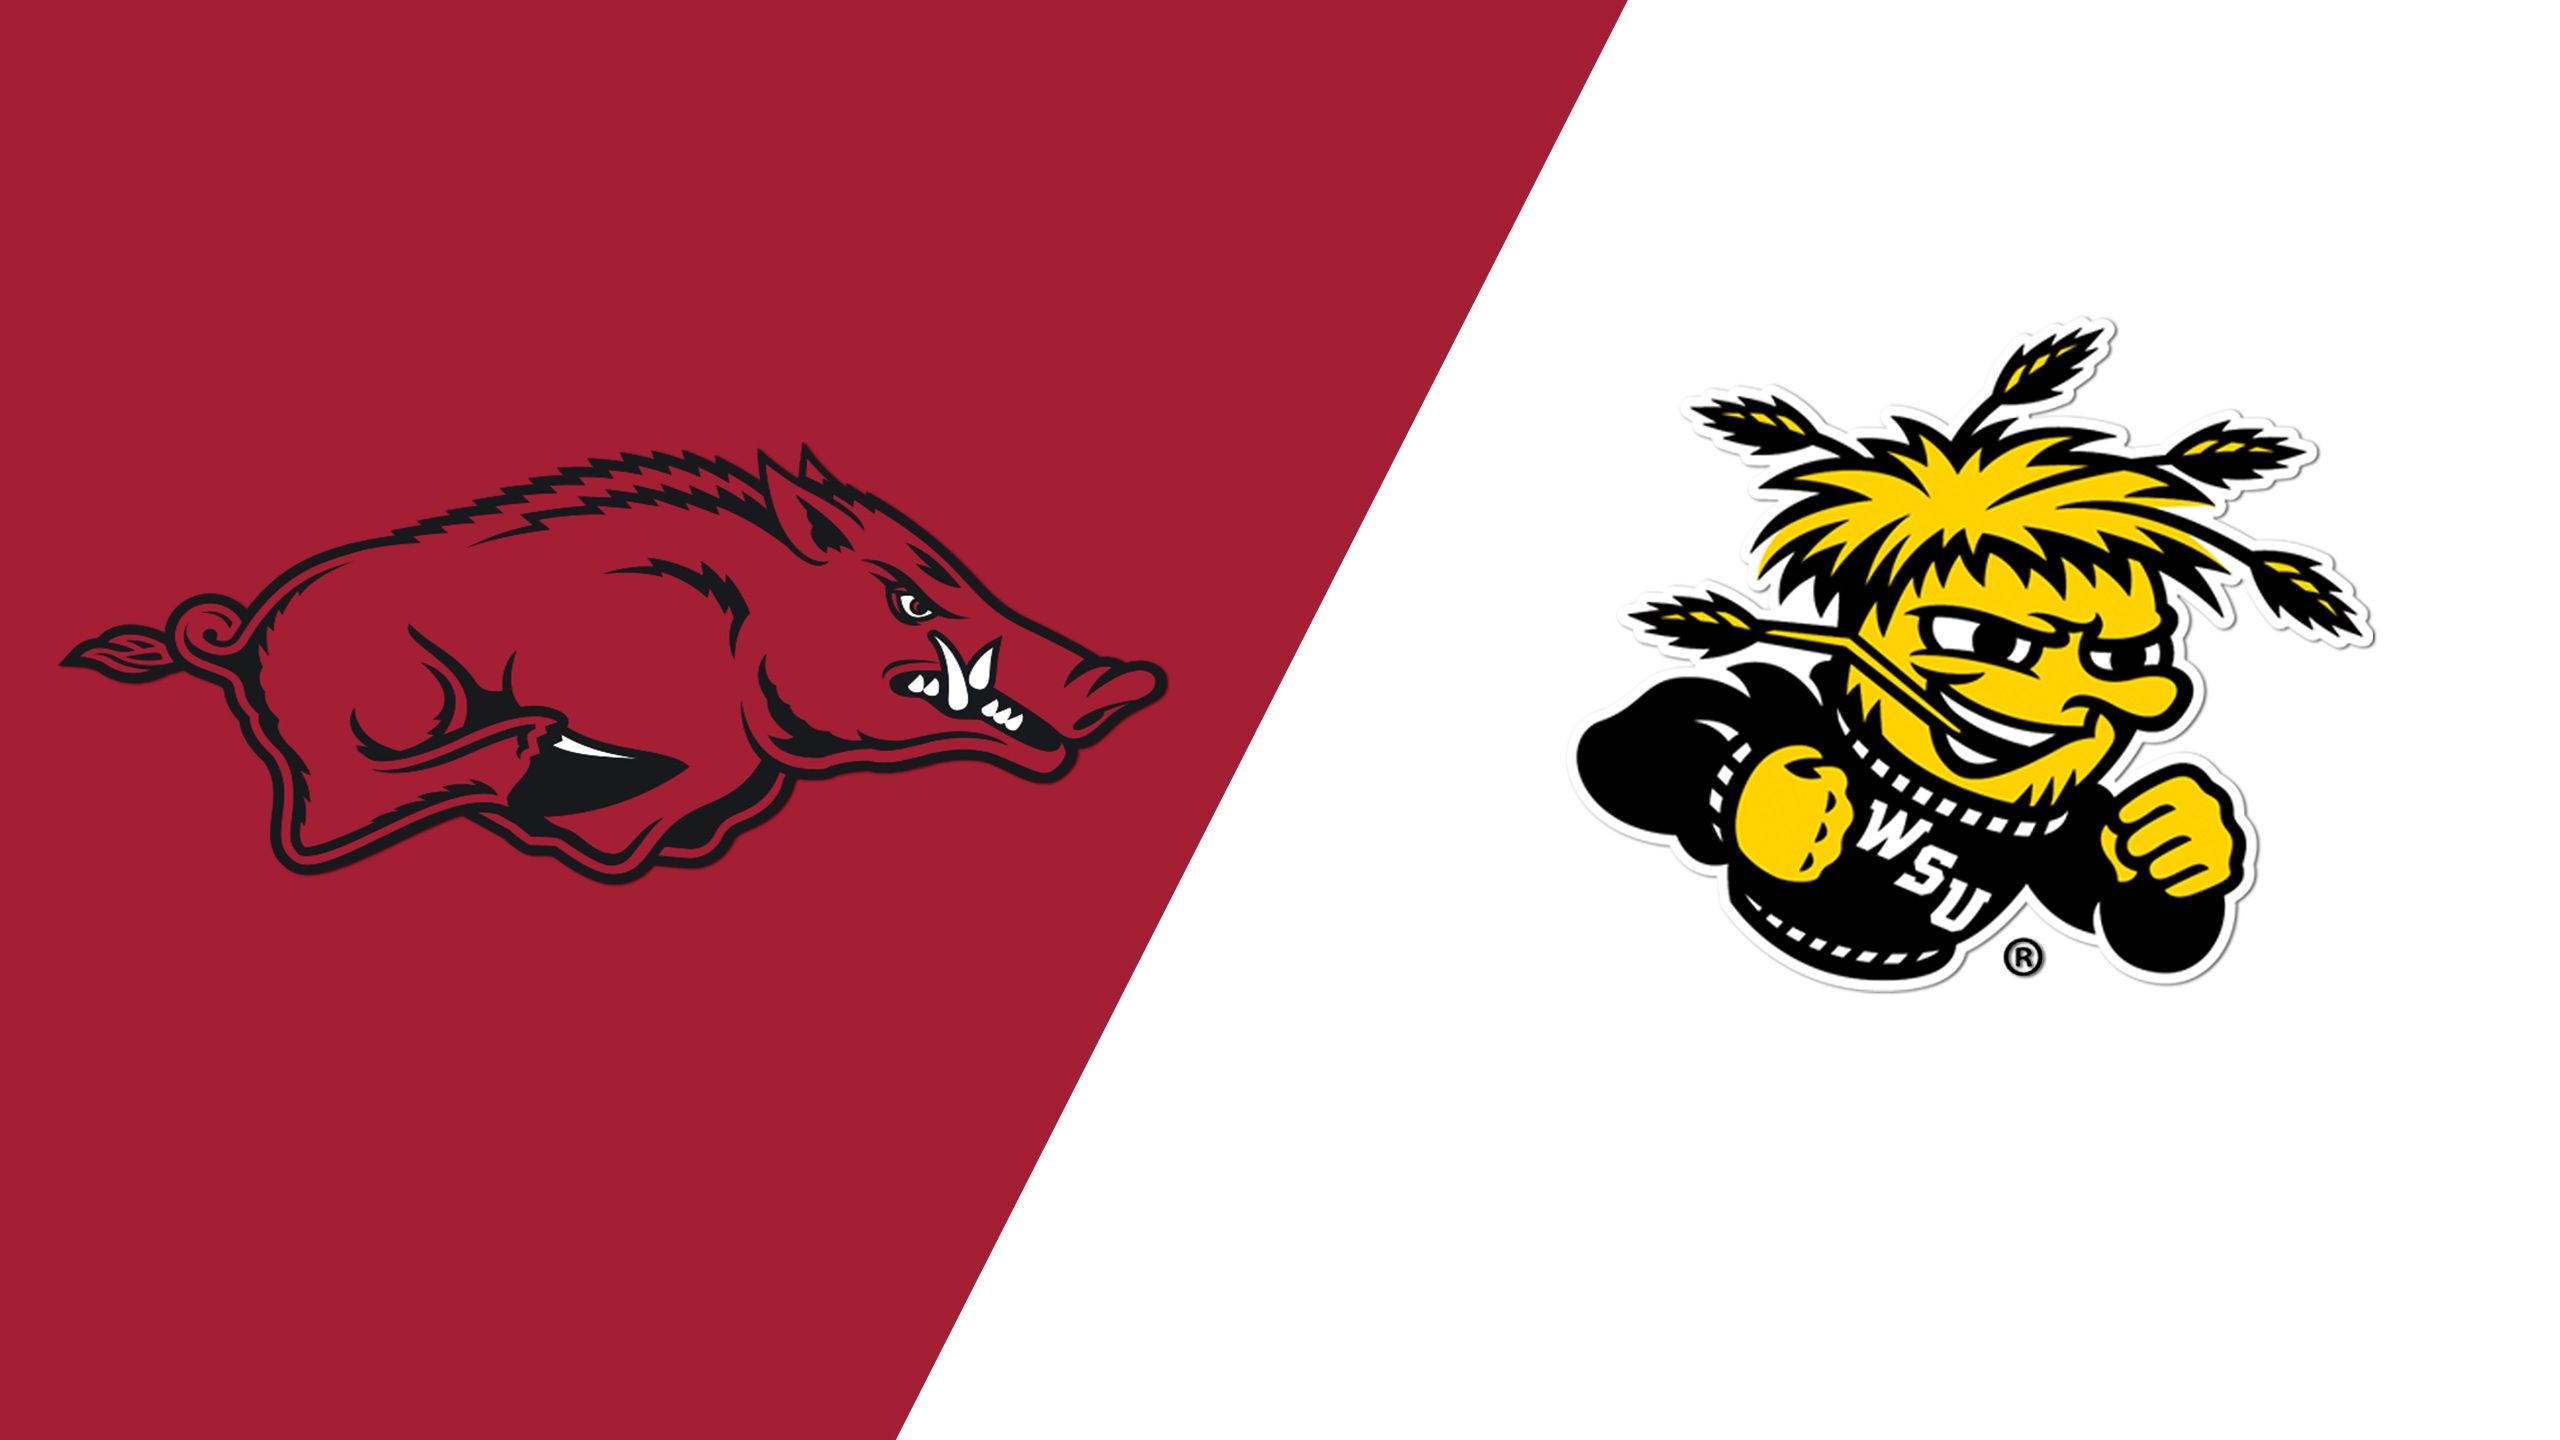 #13 Arkansas vs. Wichita State (Site 14 / Game 3) (NCAA Softball Championship)